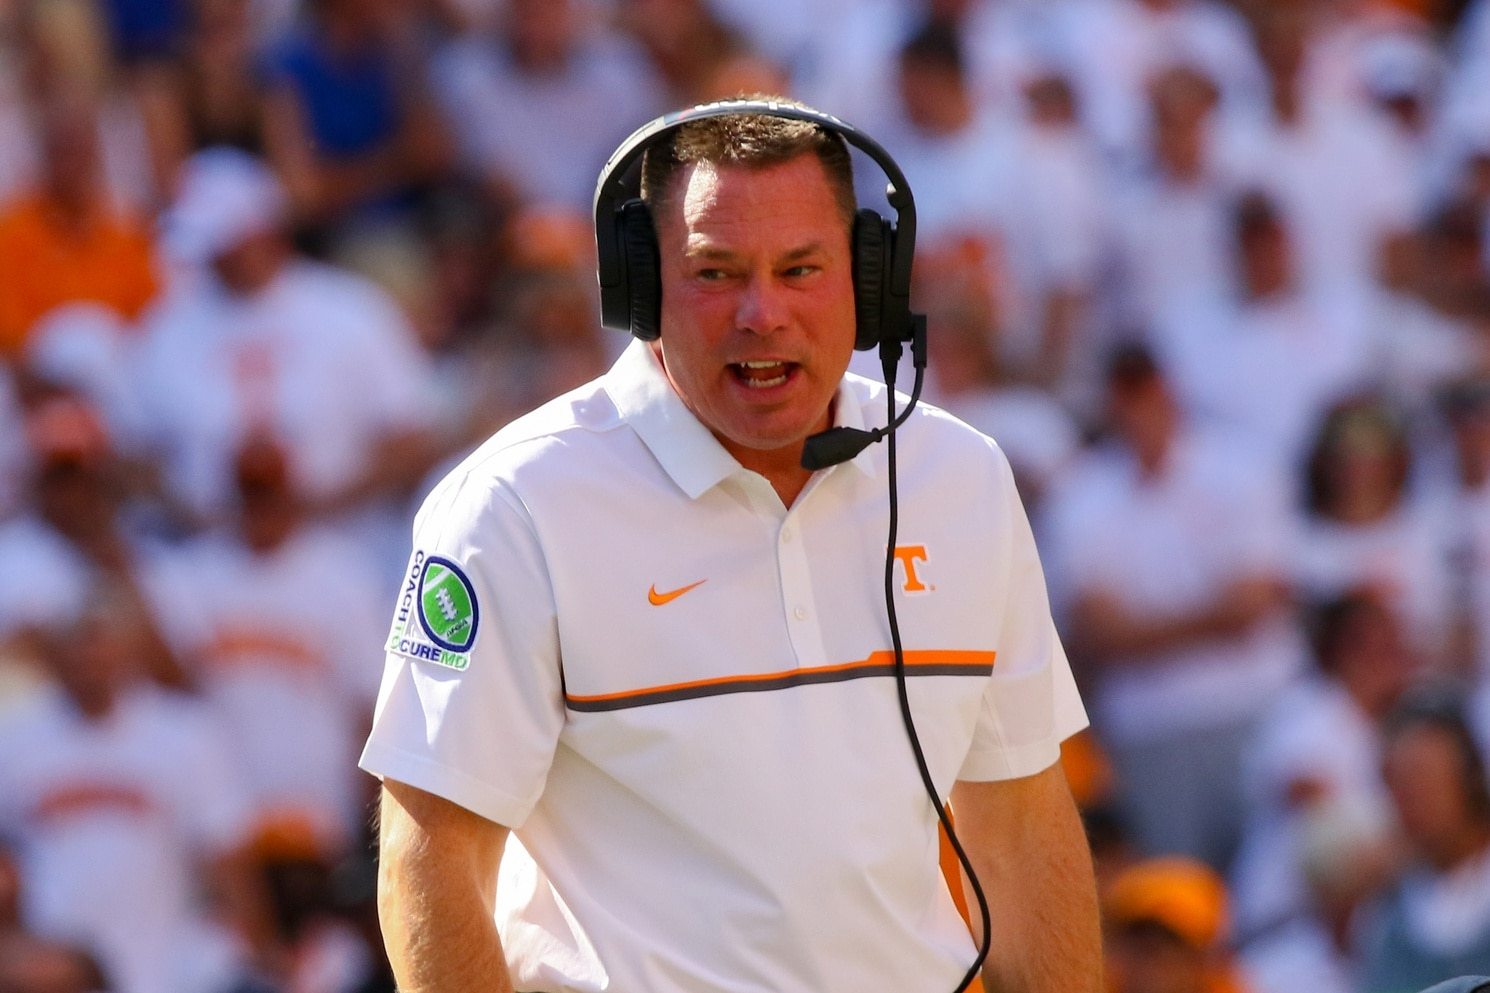 Butch Jones and the Vols lost top recruit Lyn-J Dixon after losing to South Carolina